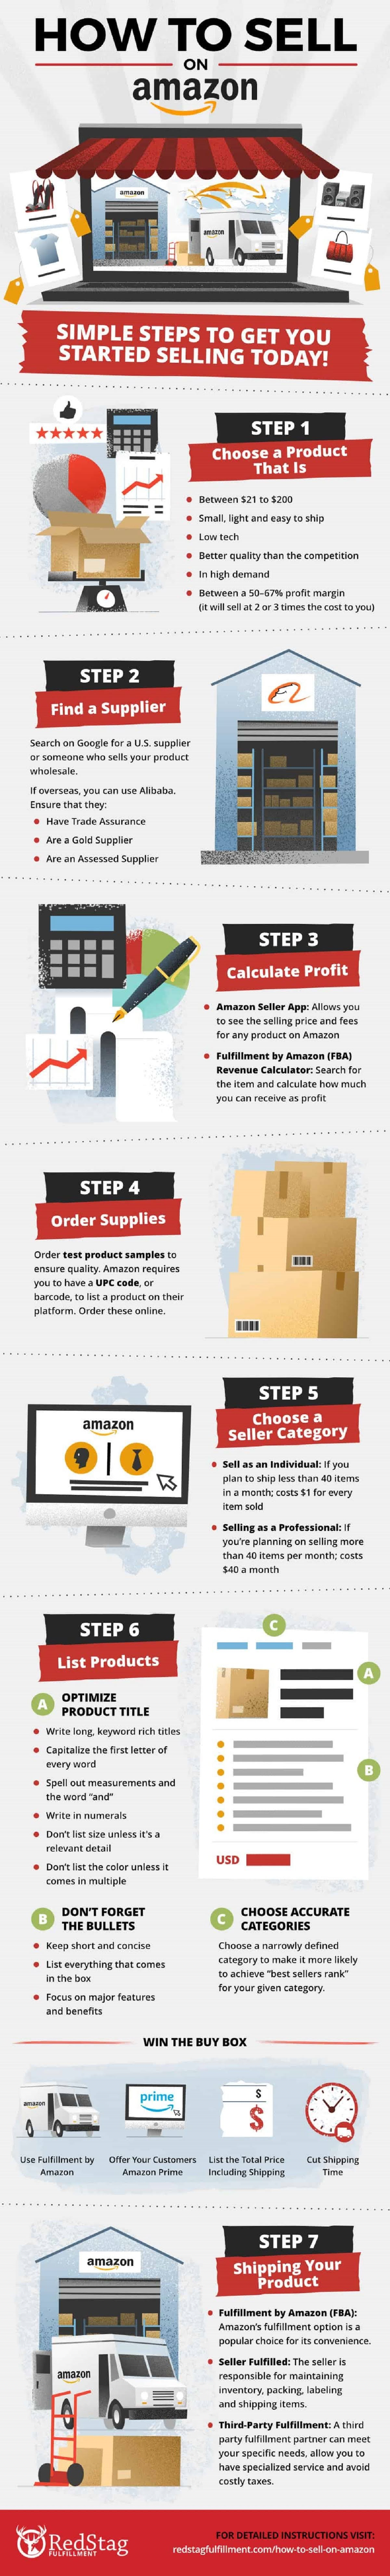 how-to-sell-on-amazon-the-complete-guide-infographic